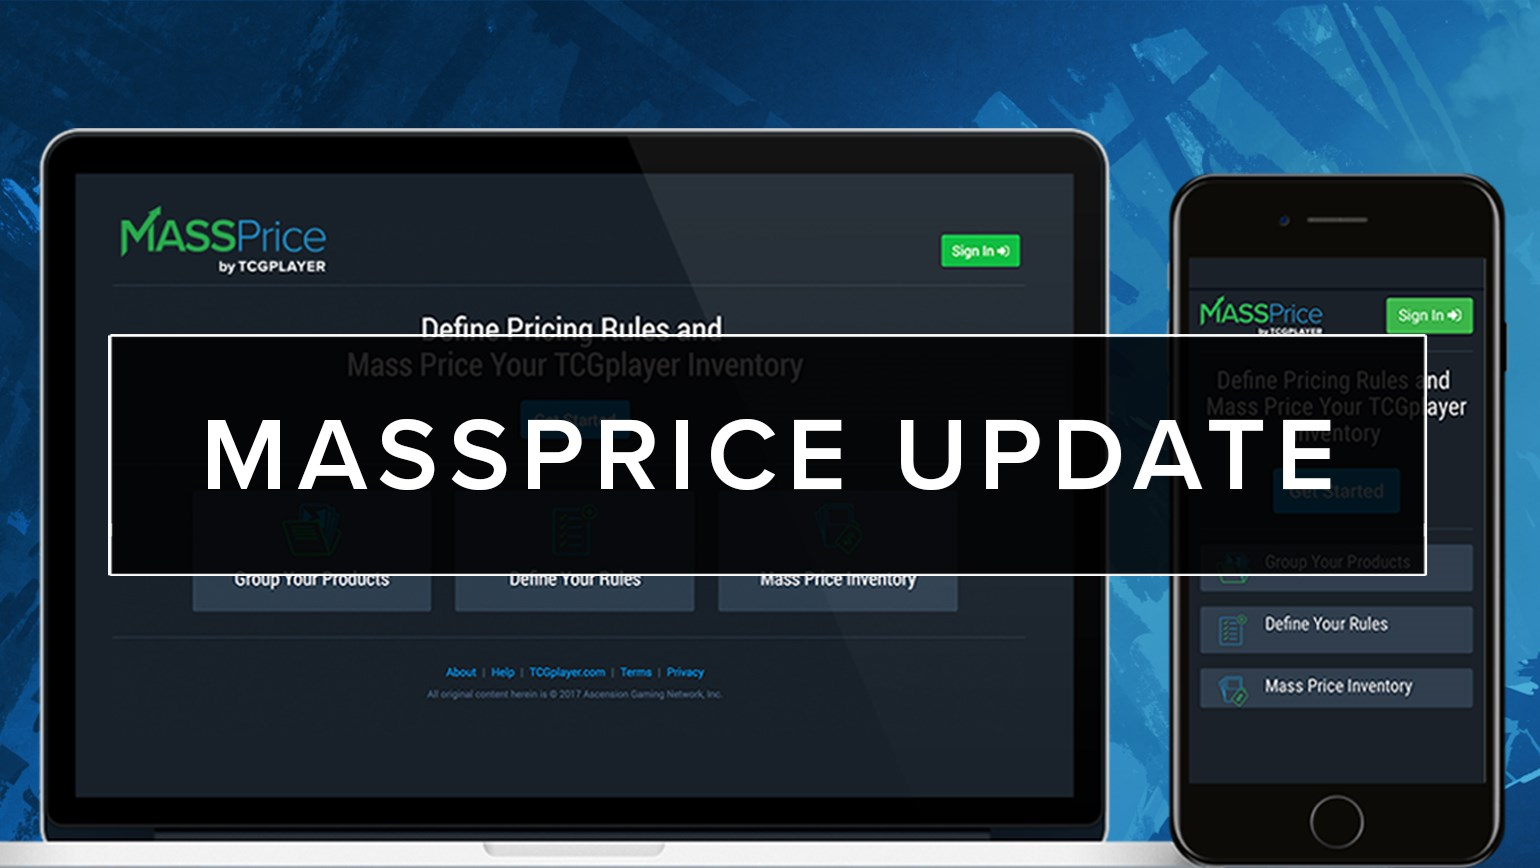 MassPrice Update 10/19